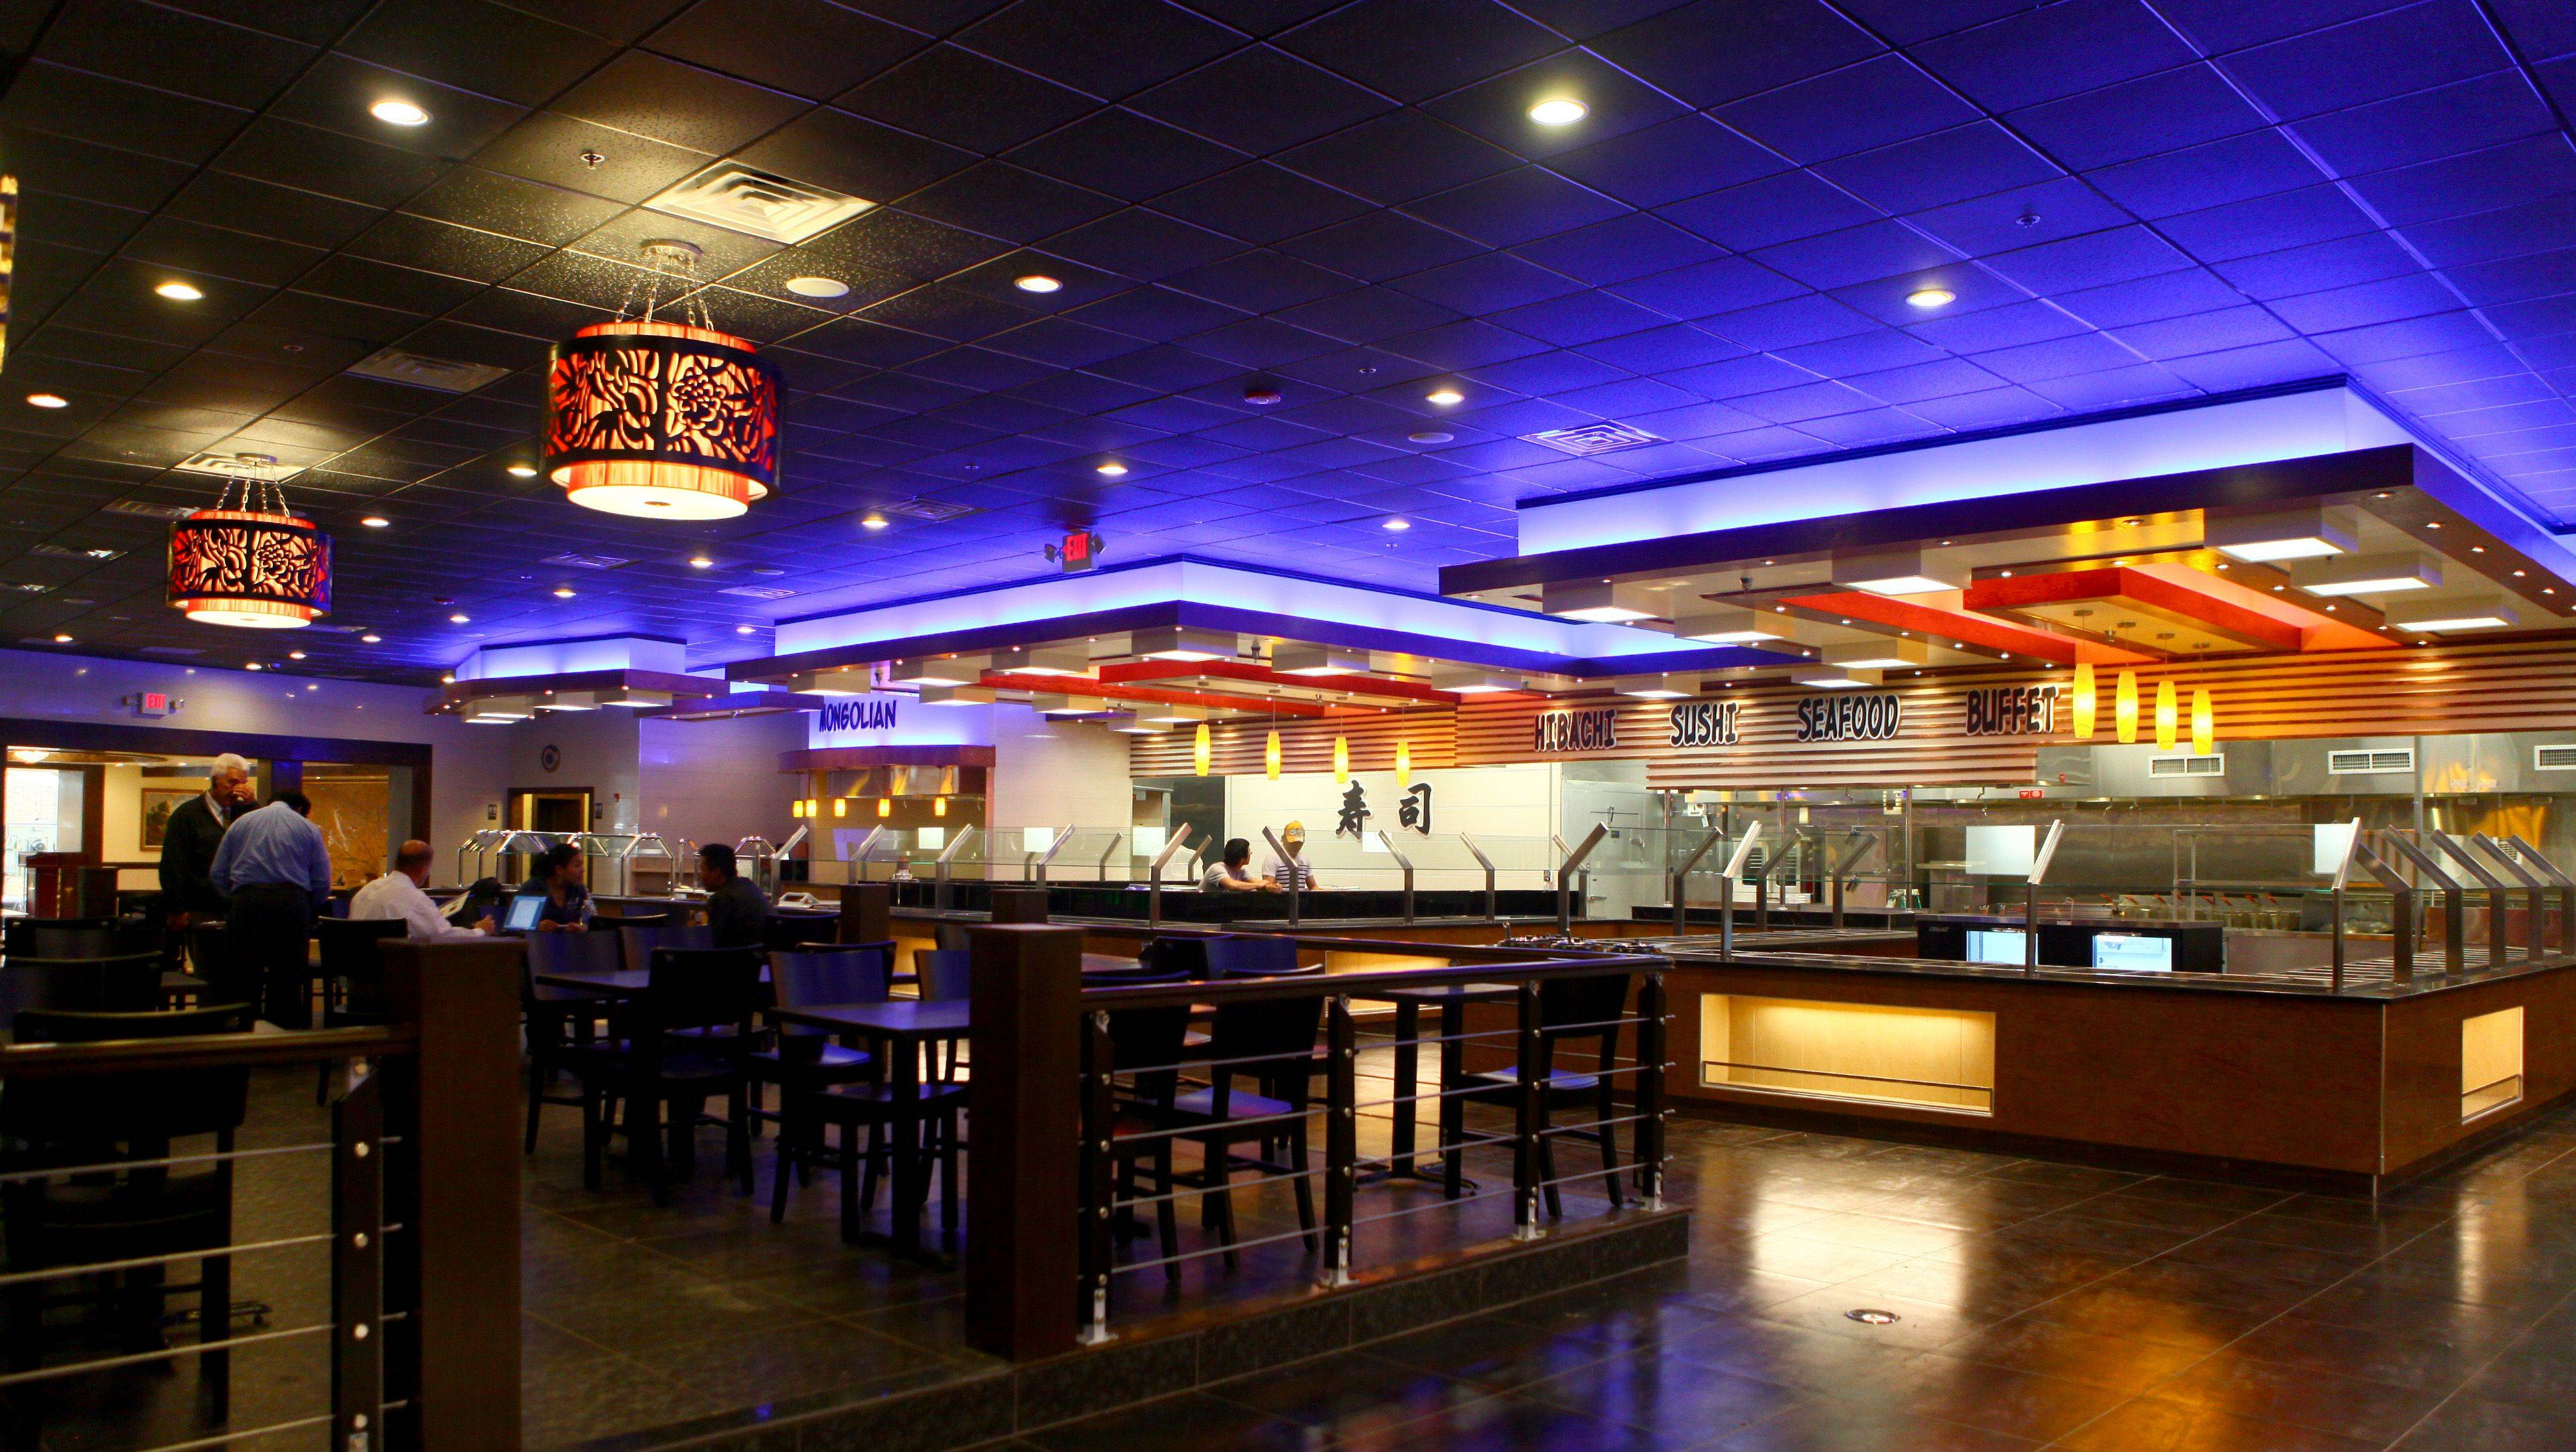 This is the main dining room at Royal Japanese Seafood Buffet, a new Japanese restaurant offering hibachi, sushi and a buffet in the Golf Center shopping complex in Hoffman Estates.